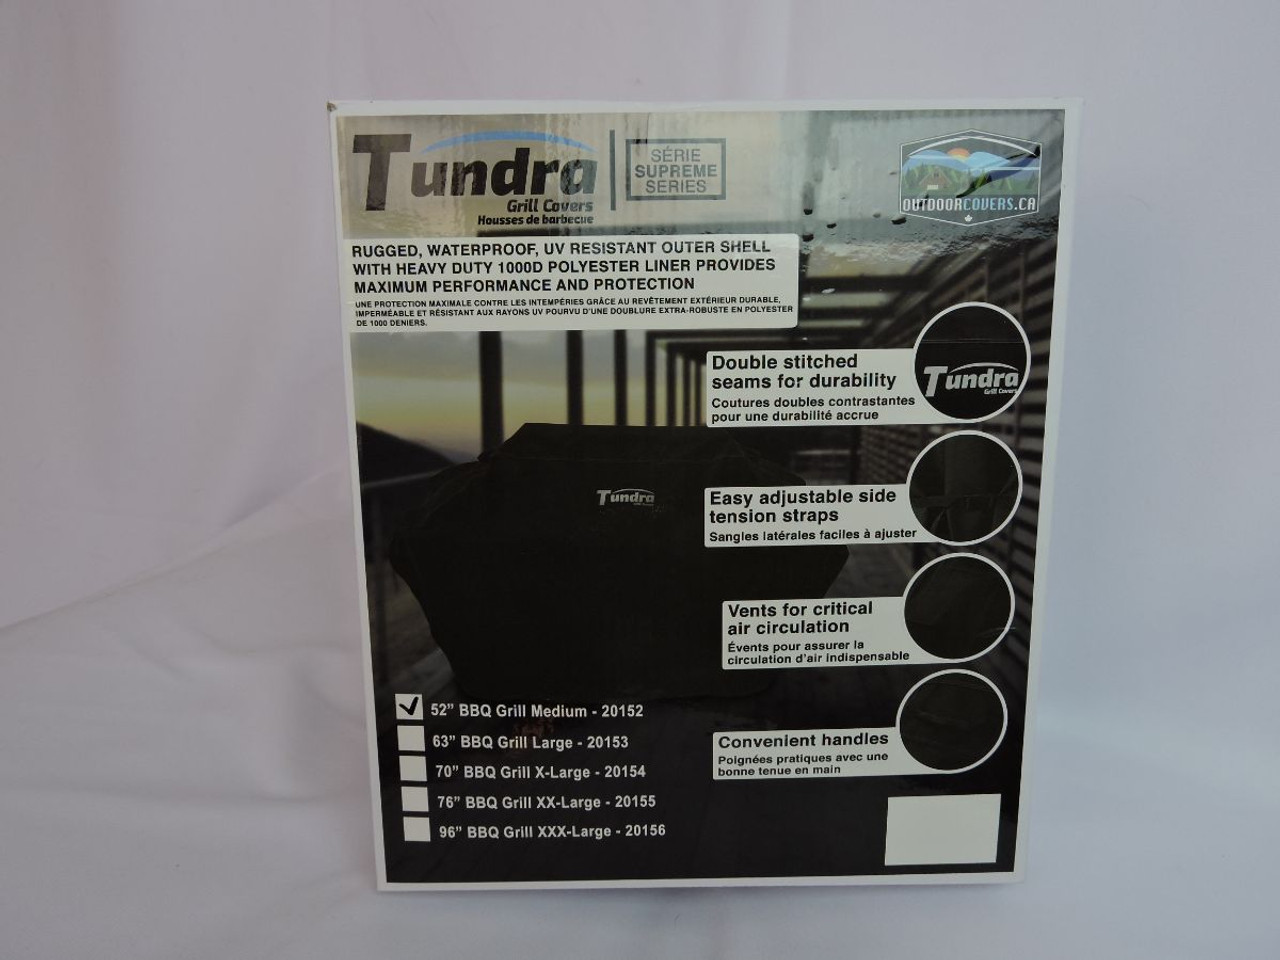 Tundra Grill Covers packaging